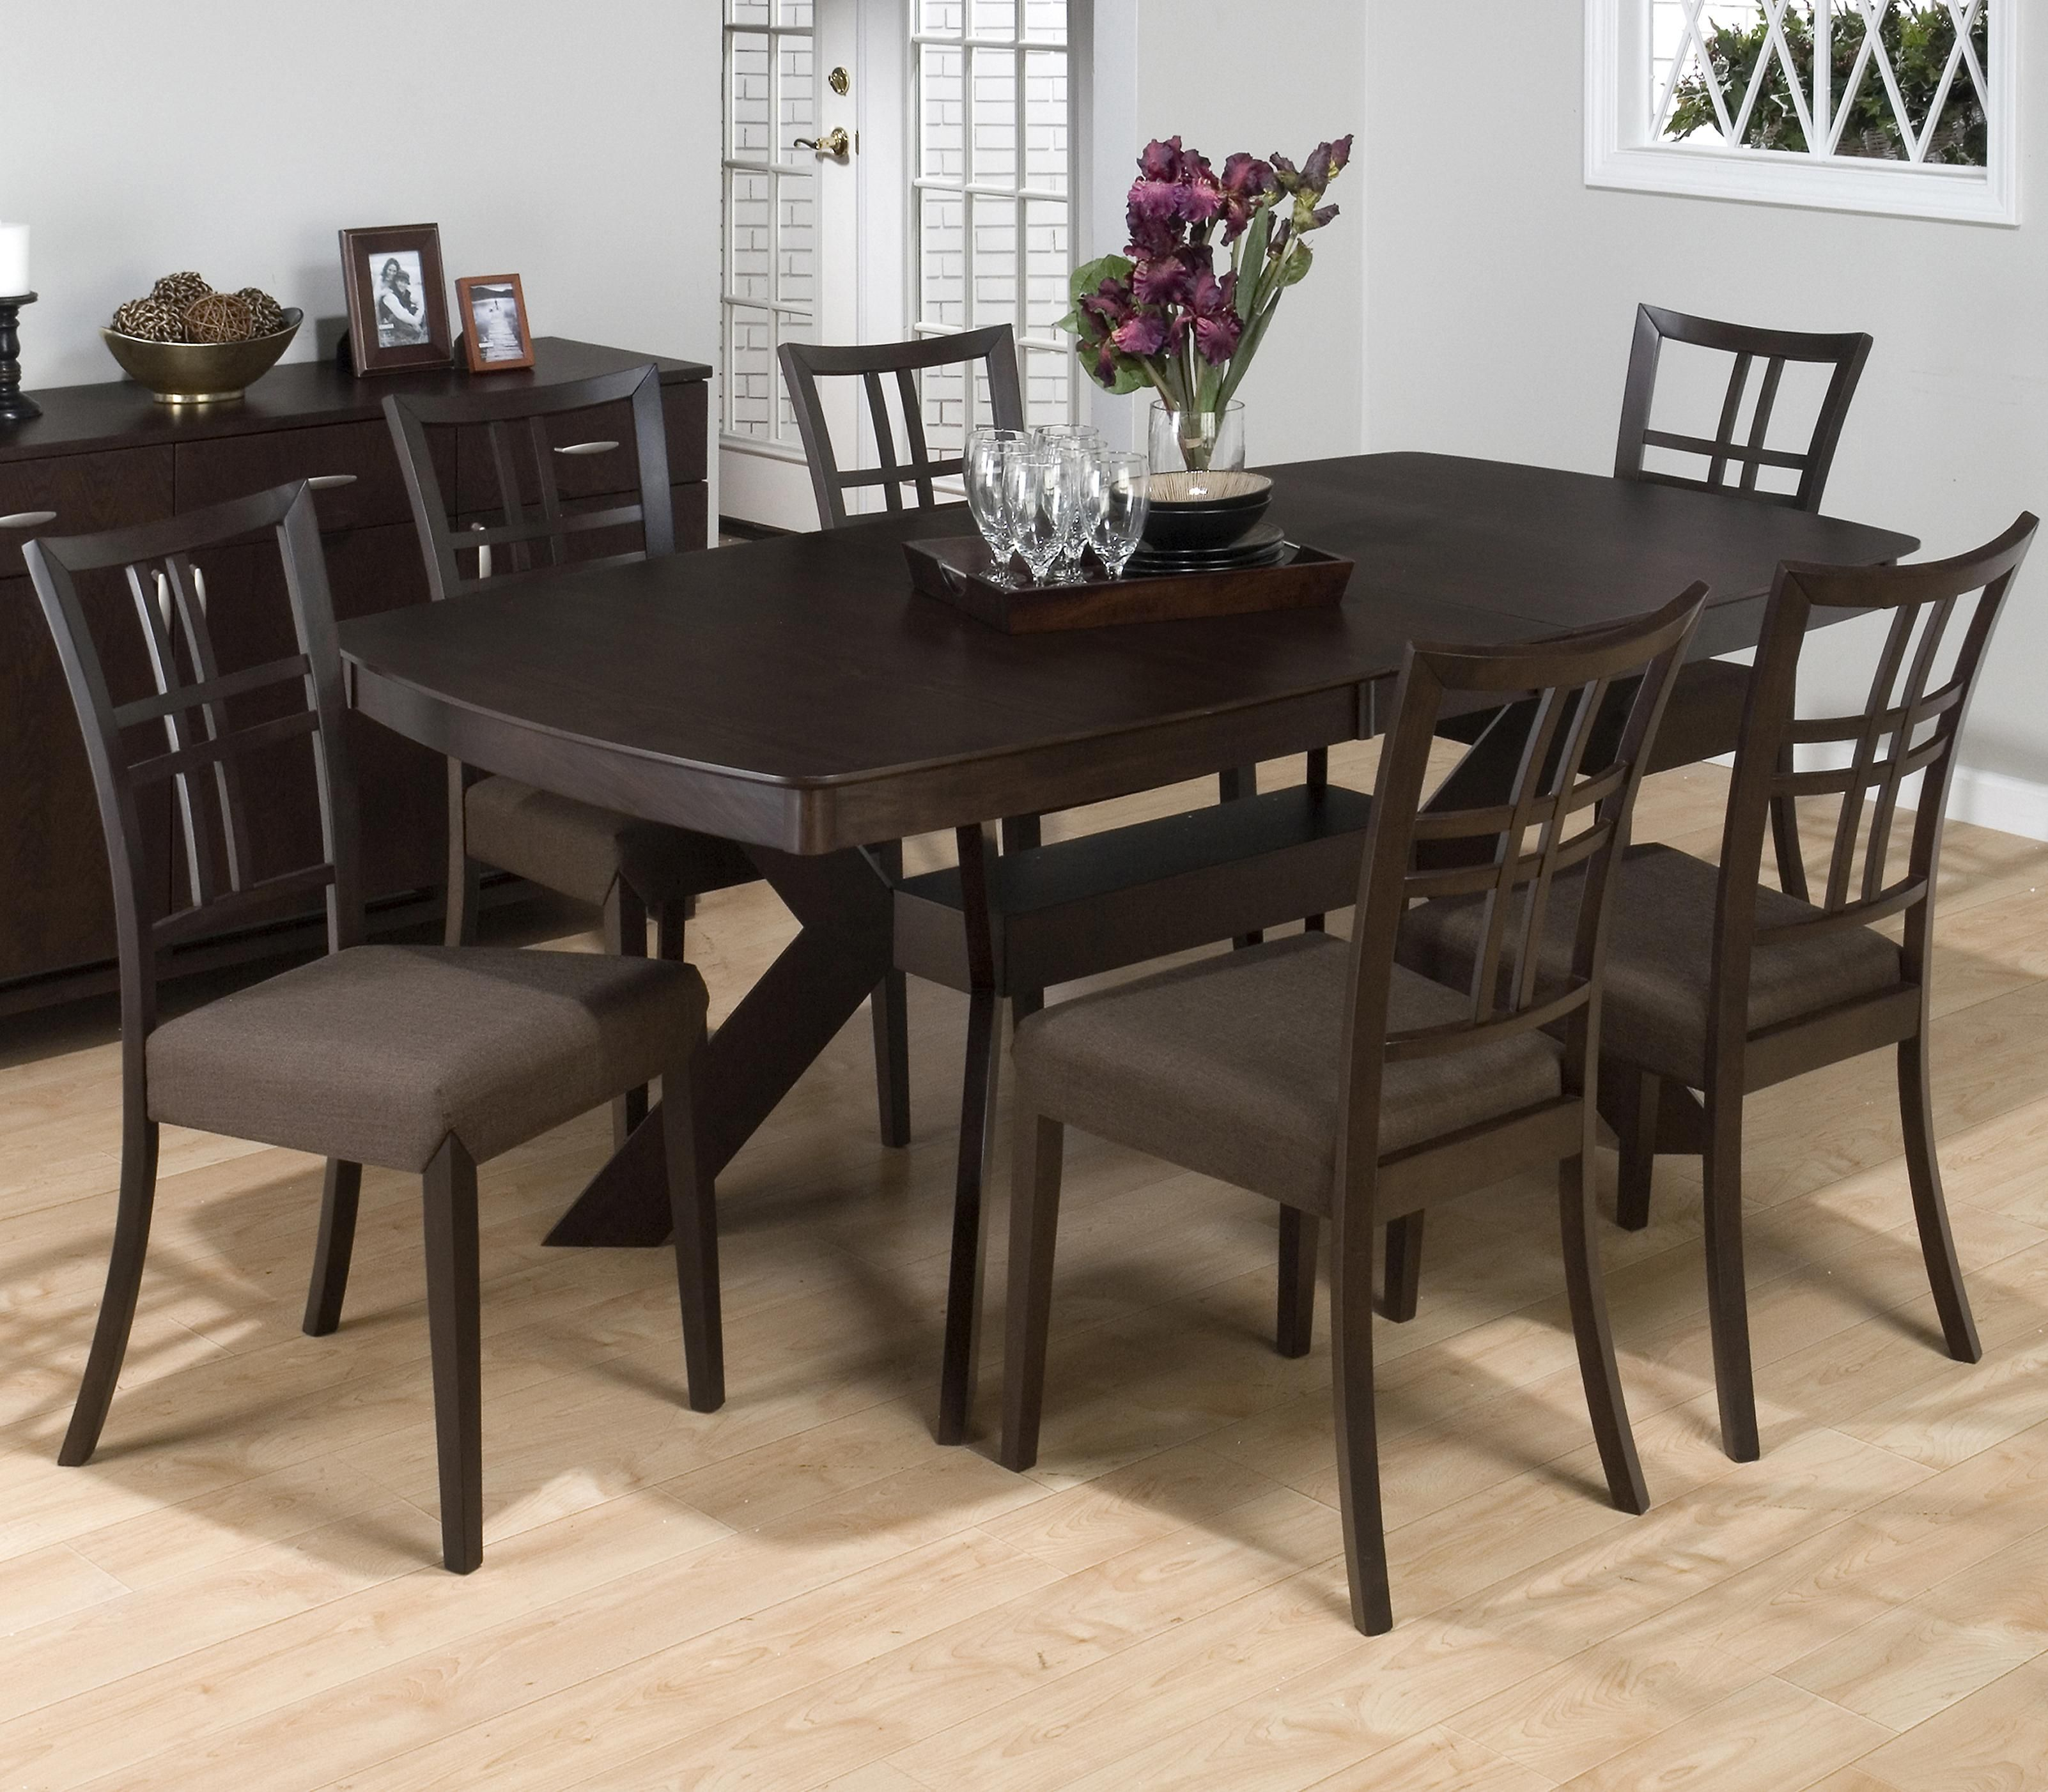 Love Ryder Ash 7 Piece Dining Set By Jofran Pilgrim Dining Room